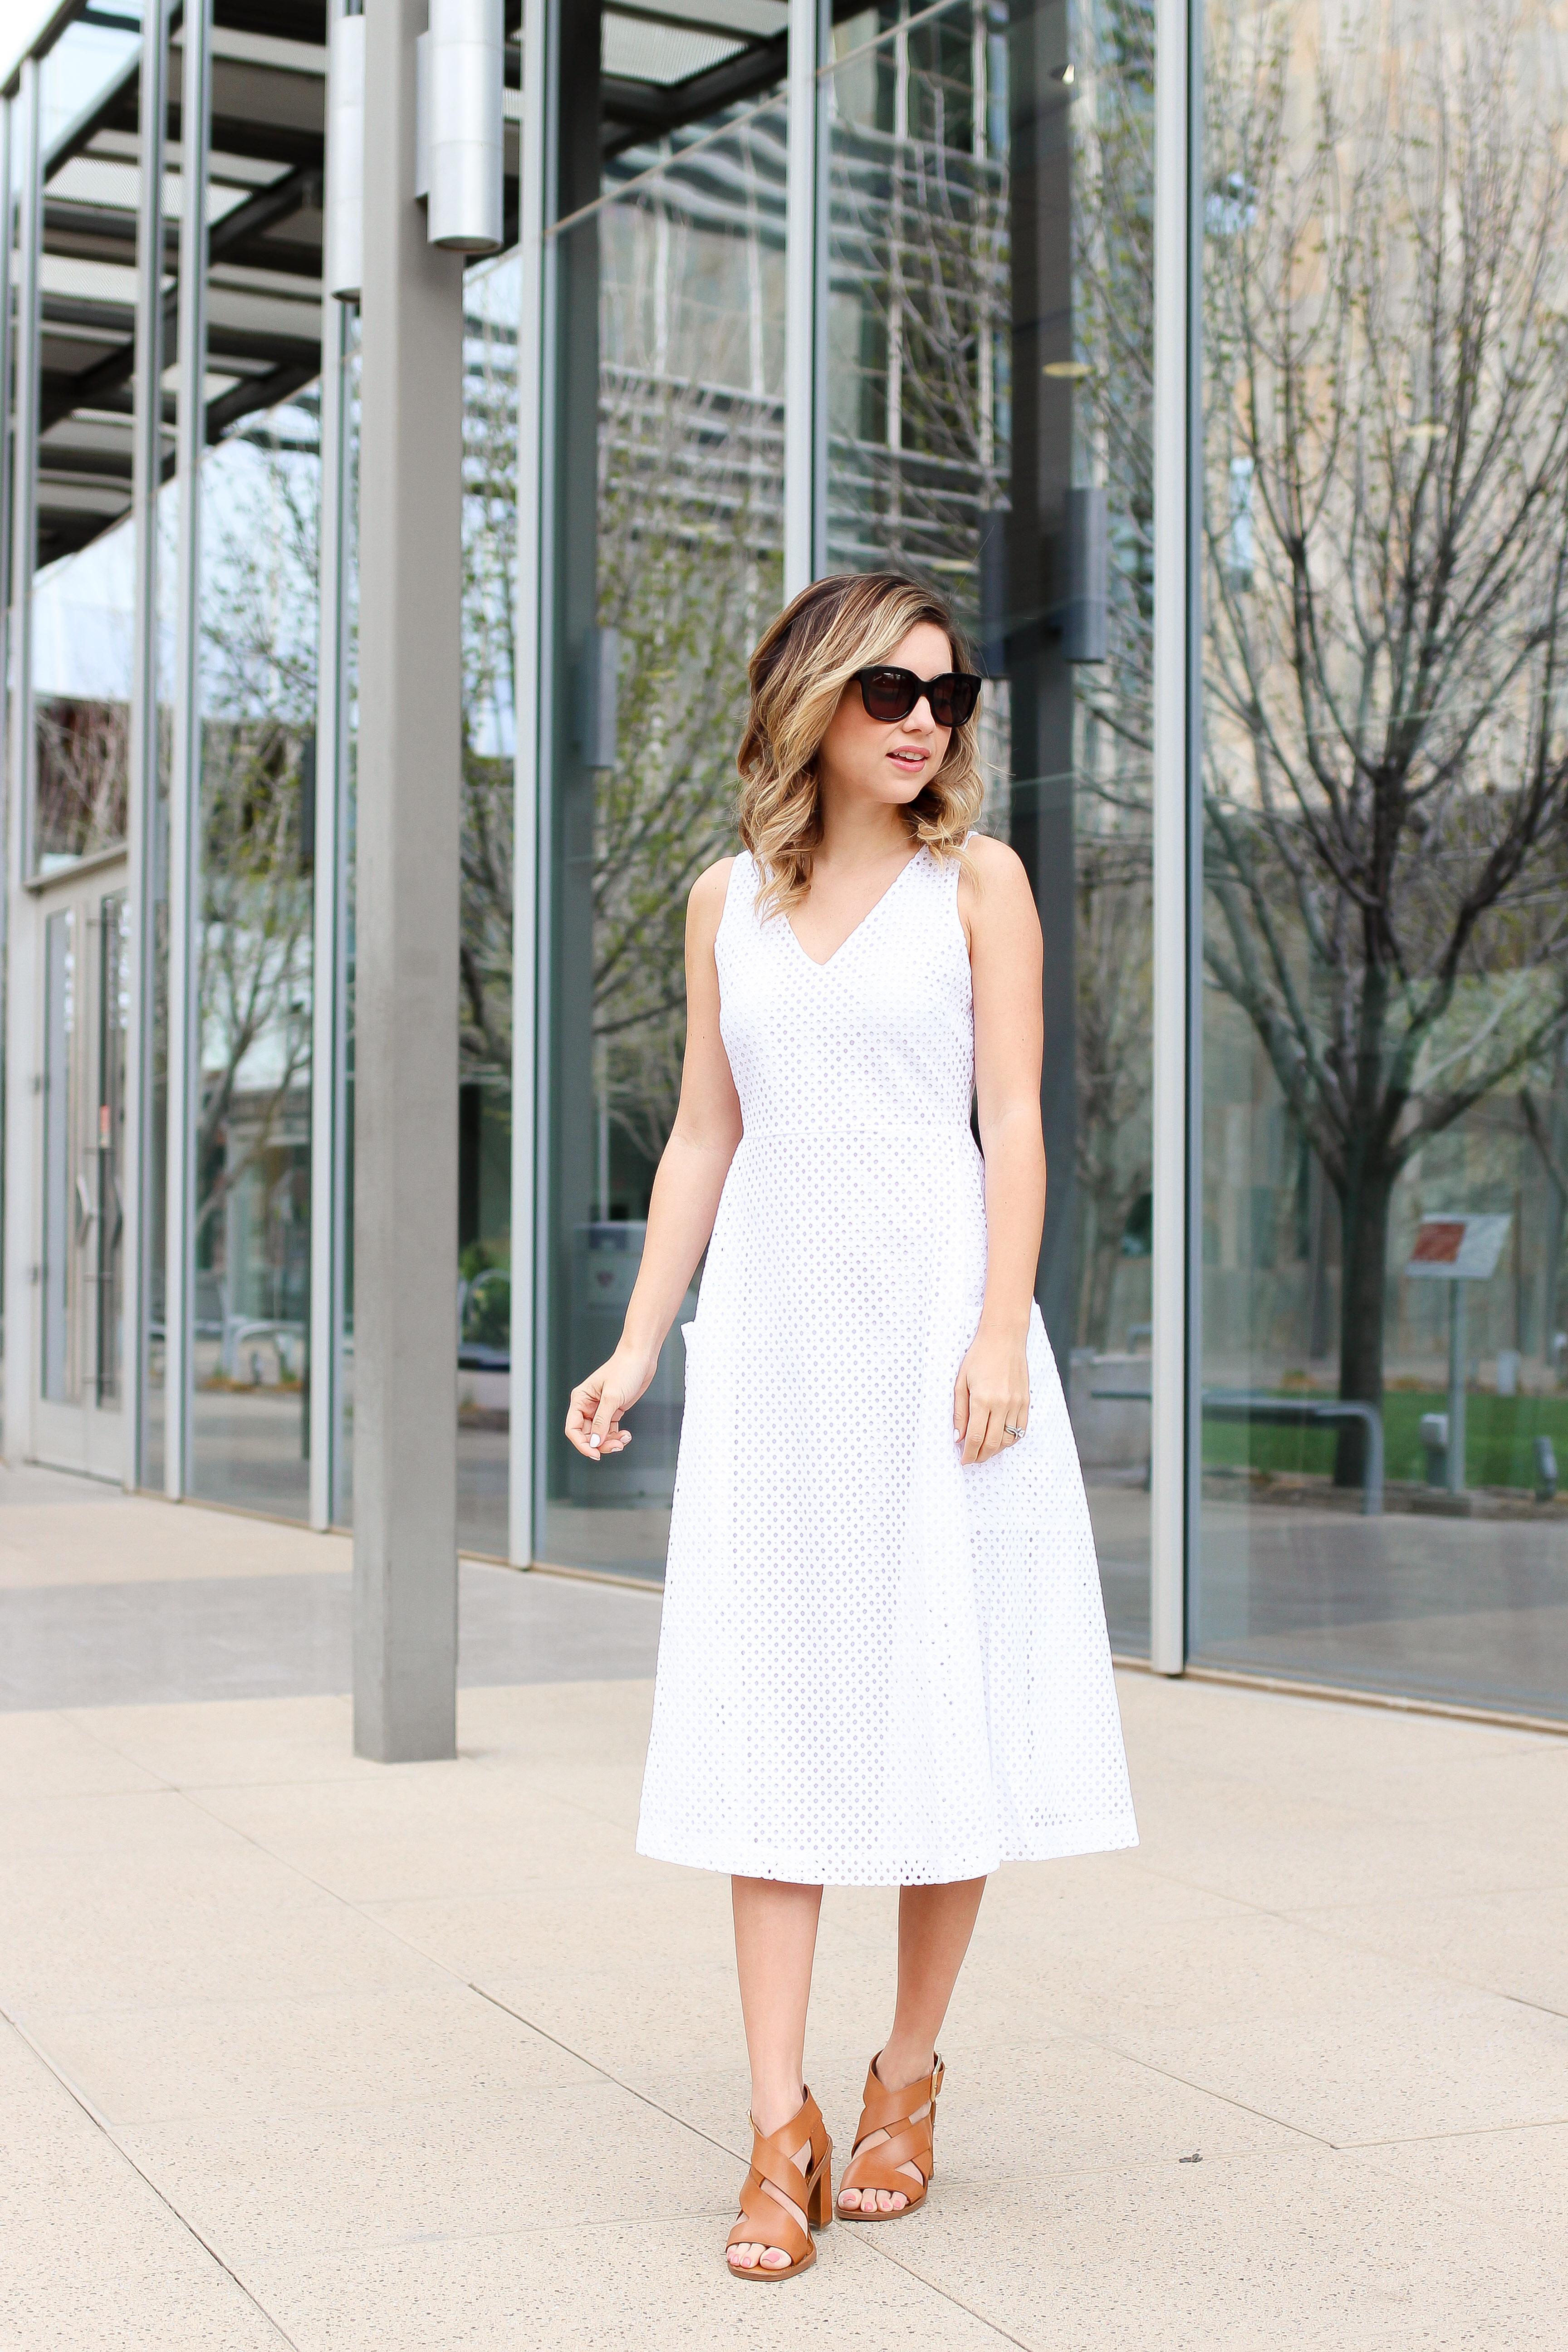 6f445f6608e Simply Sutter – Banana Republic – White Dress – Summer Dress – White Dress  outfit – best whtie dresses – summer style 2832